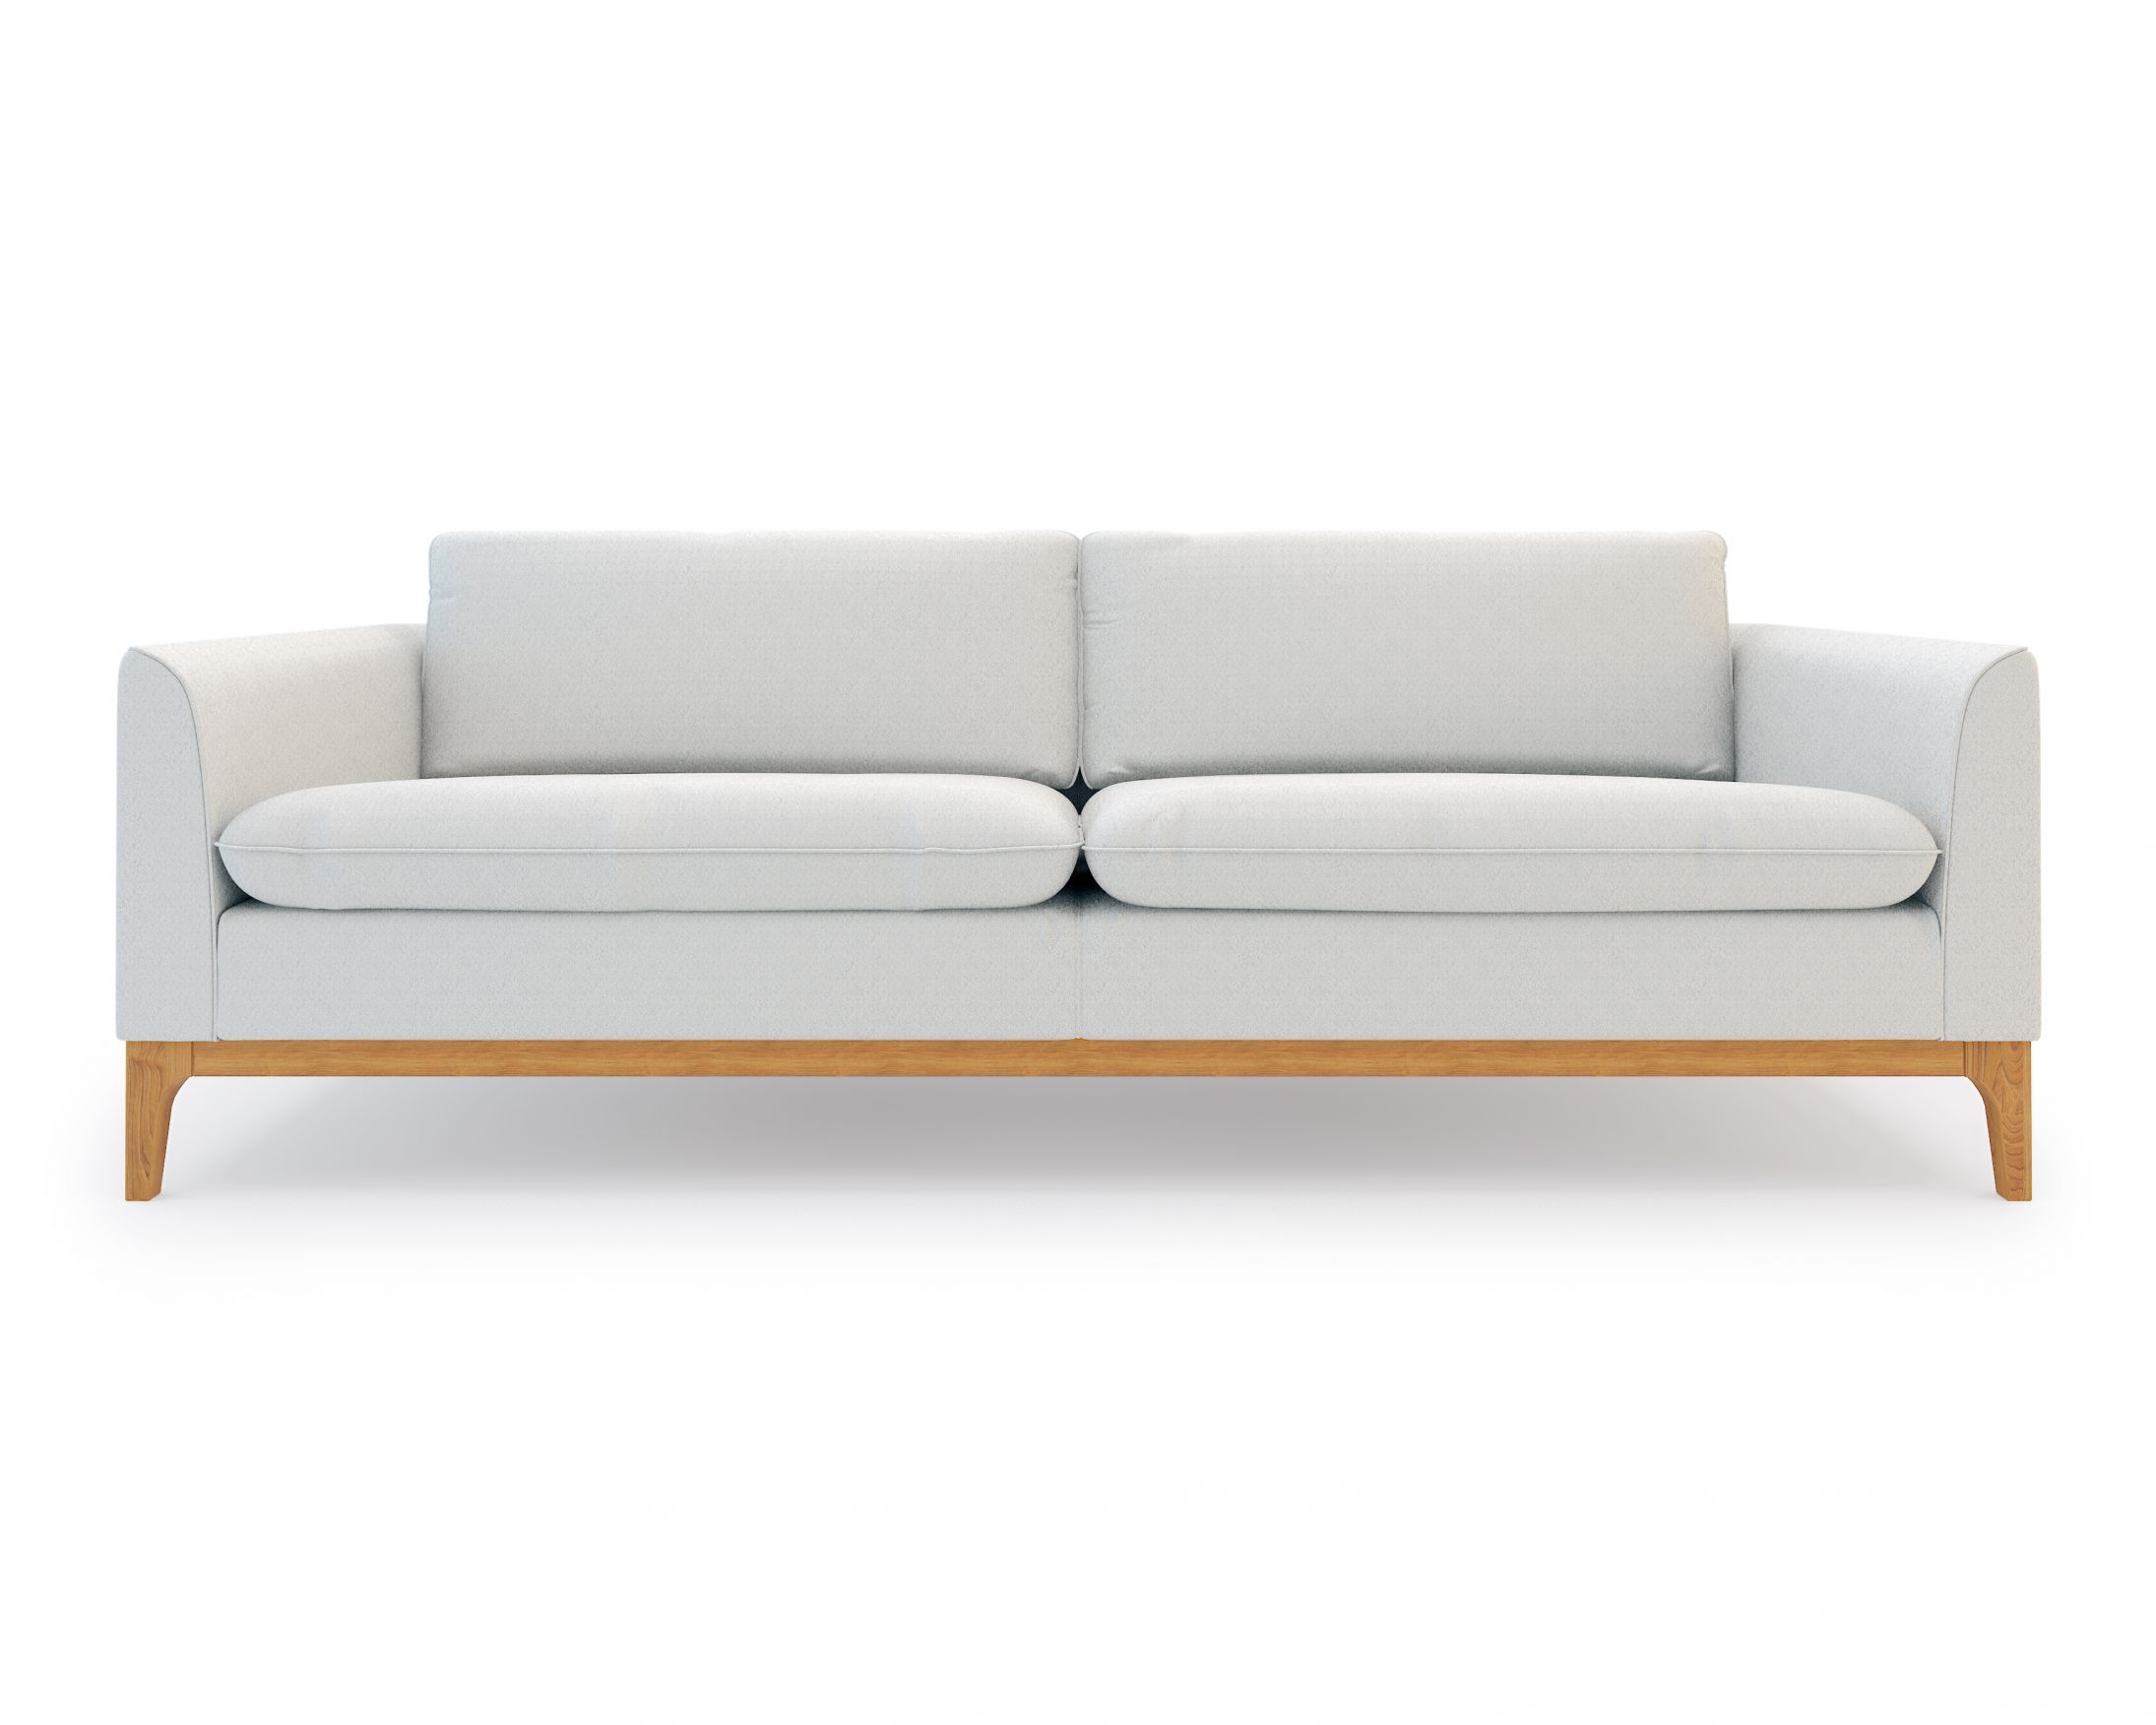 The Loren Sofa Is A Practical Scandinavian Style Sofa Exclusive To The Kure Collection By Rove Concepts The St Scandinavian Sofas Sofa Scandinavian Style Sofa